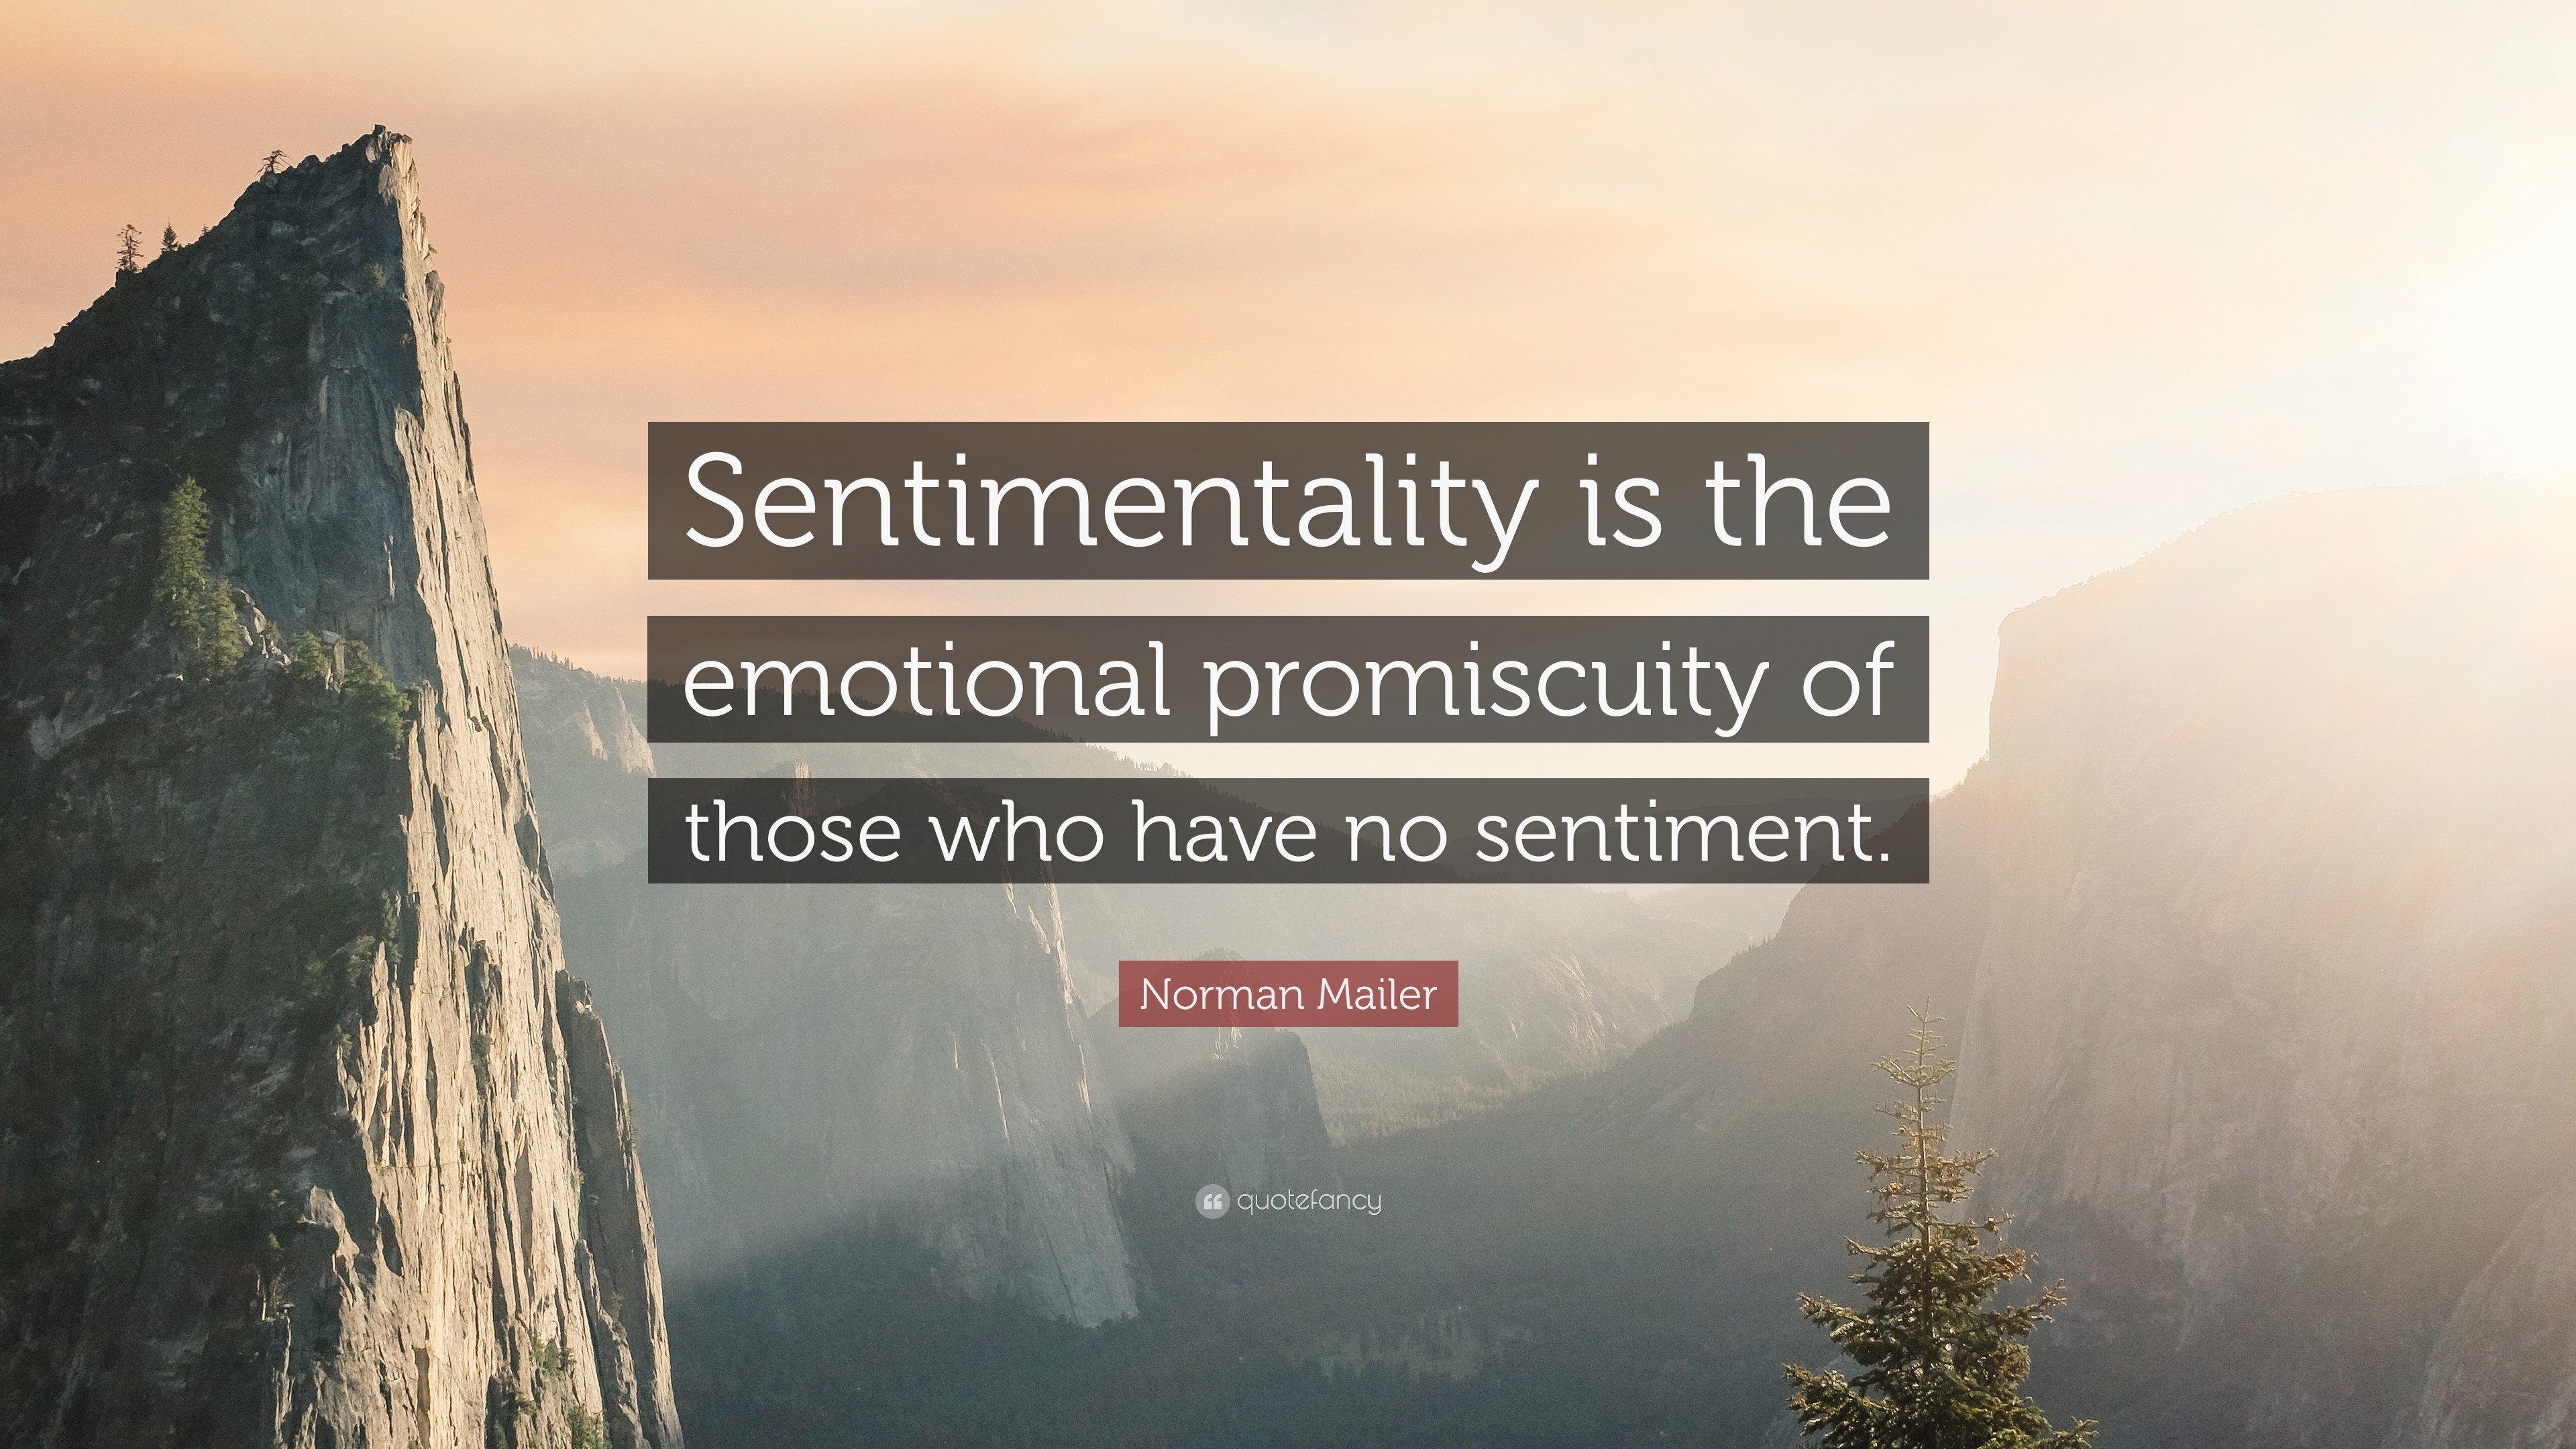 Emotional promiscuity